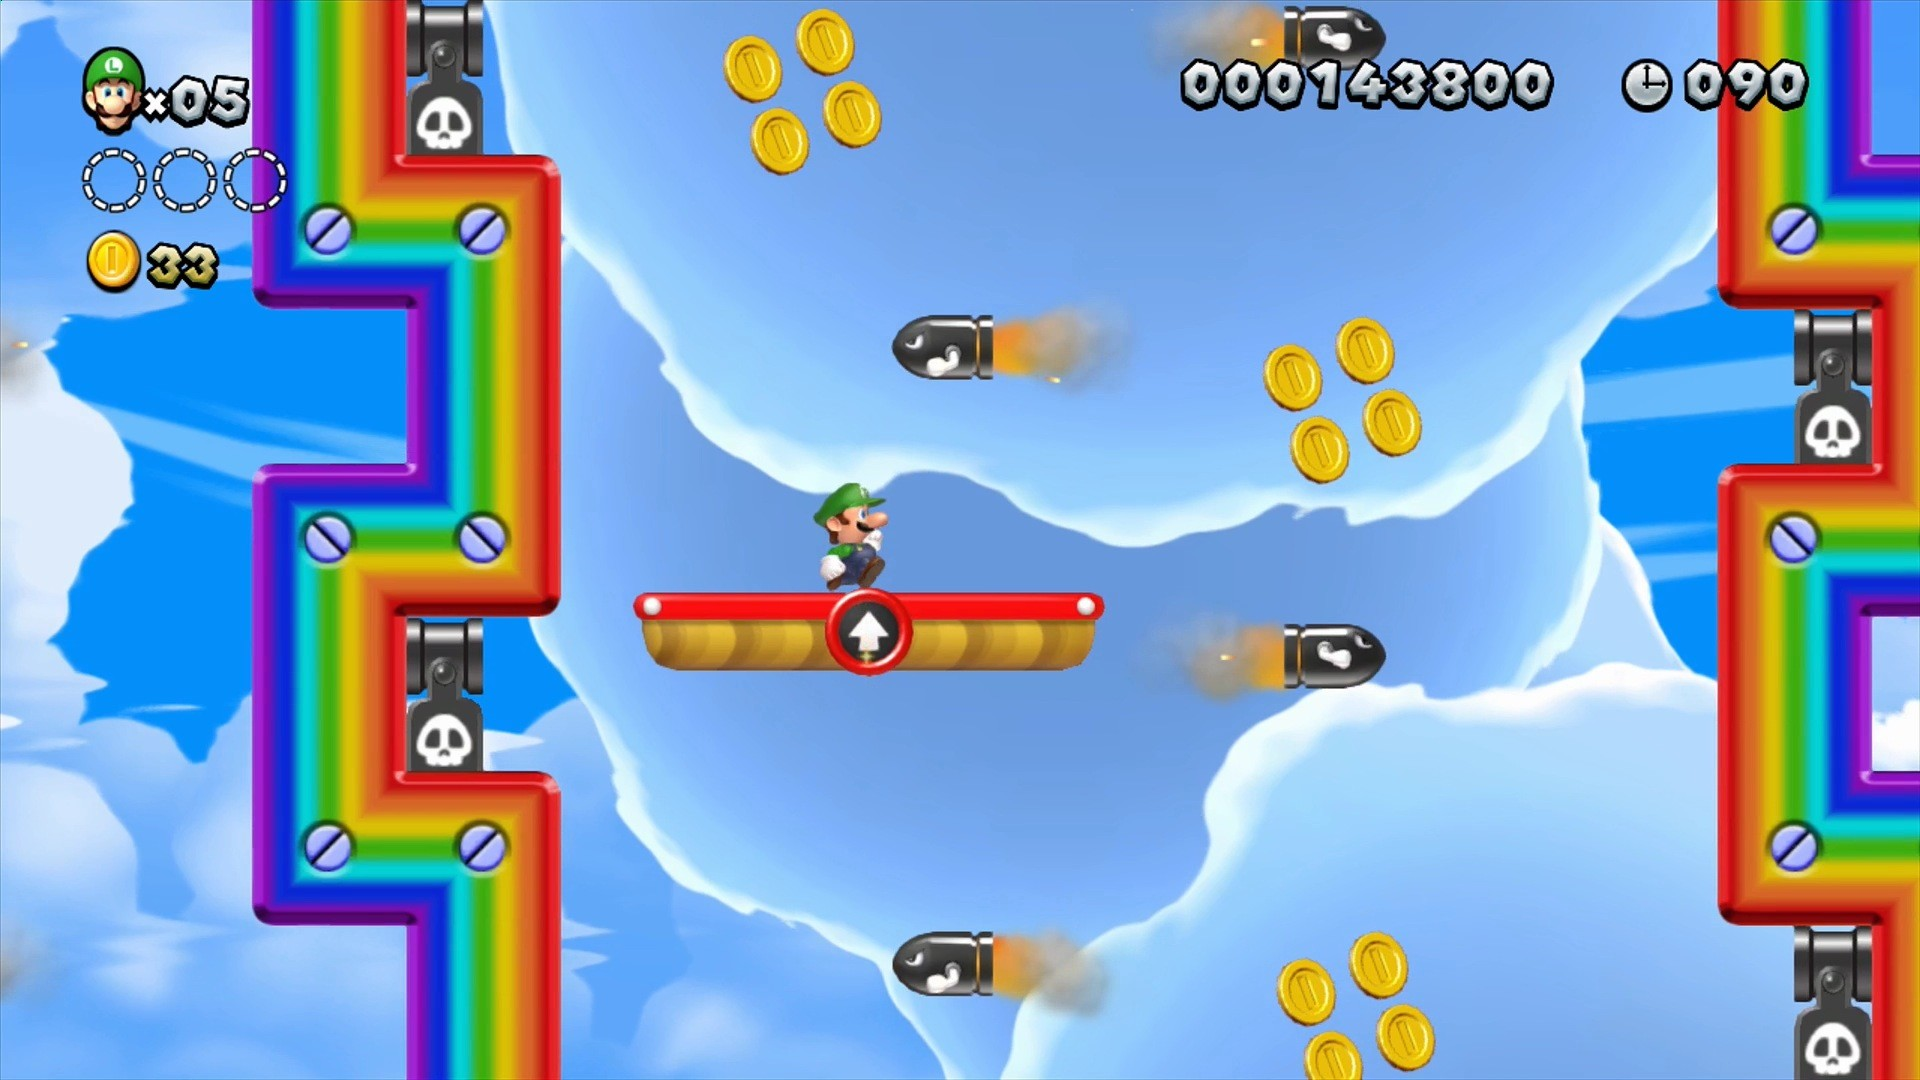 1920x1080 ... New Super Luigi U: Going up ...